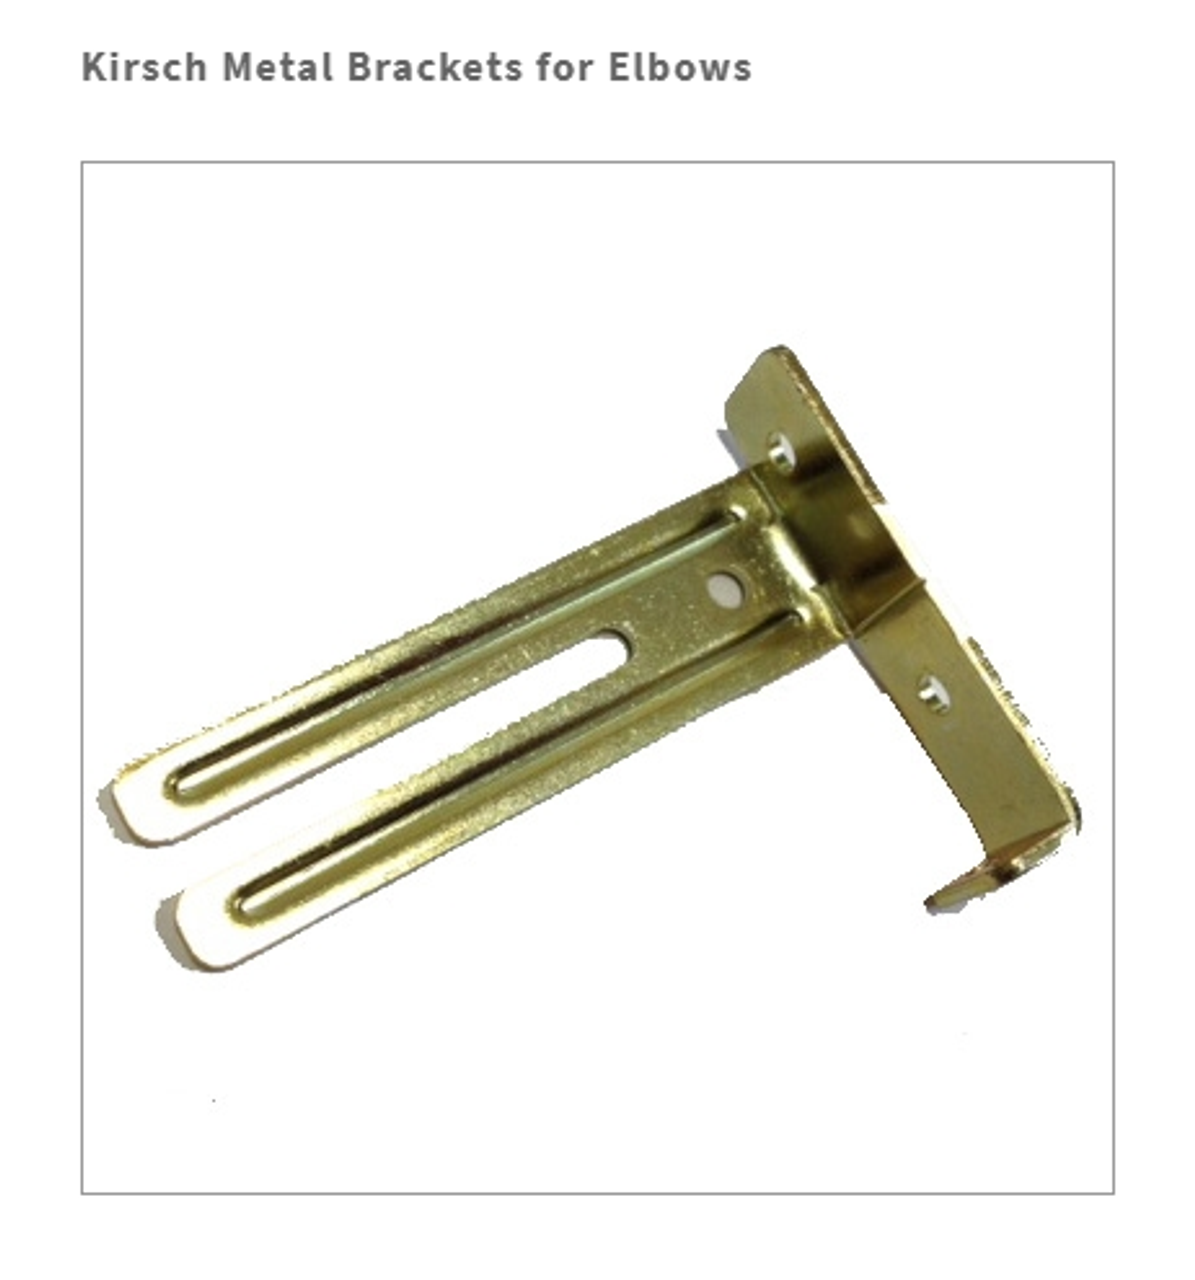 Kirsch Metal Bracket for use with wood elbows - Pair